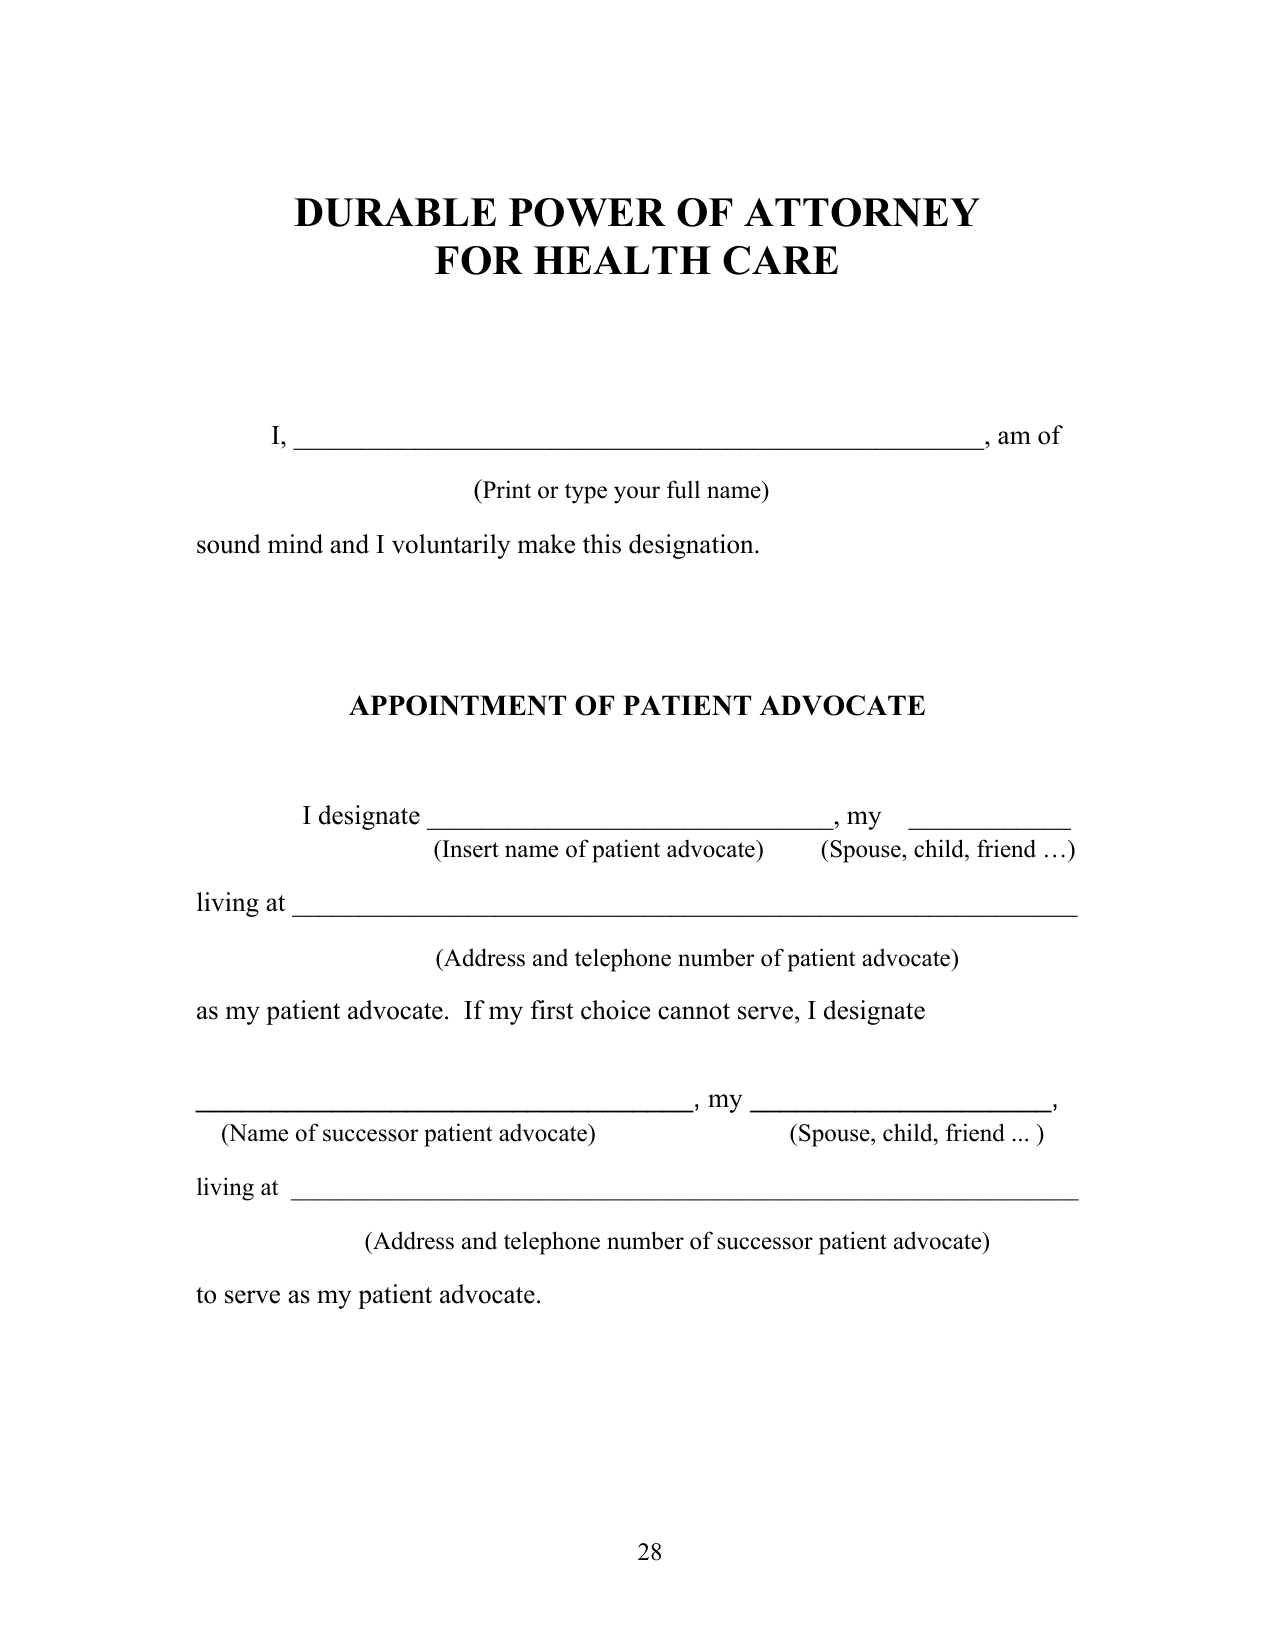 Download Michigan Living Will Form – Advance Directive | PDF ...